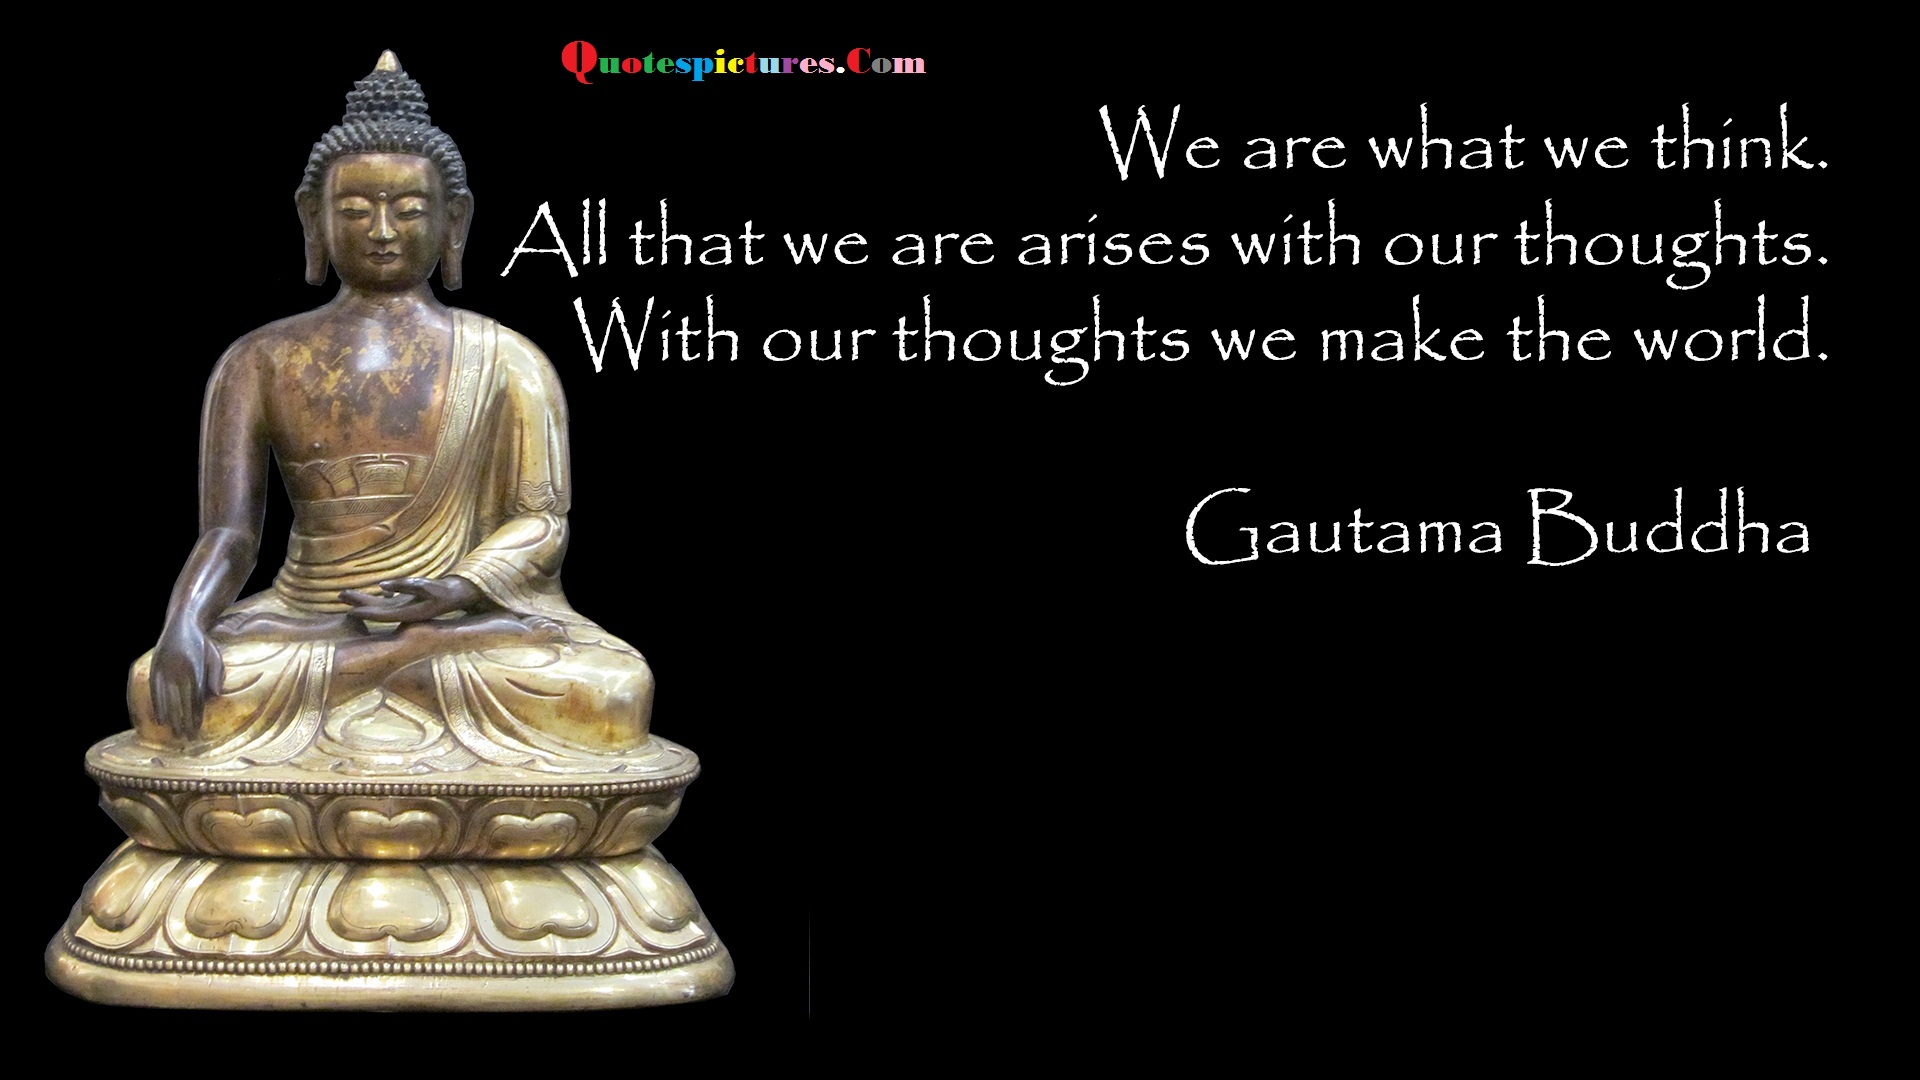 Buddhist Quotes - All That We Are Arises With Our Thoughts By Gautam Buddha